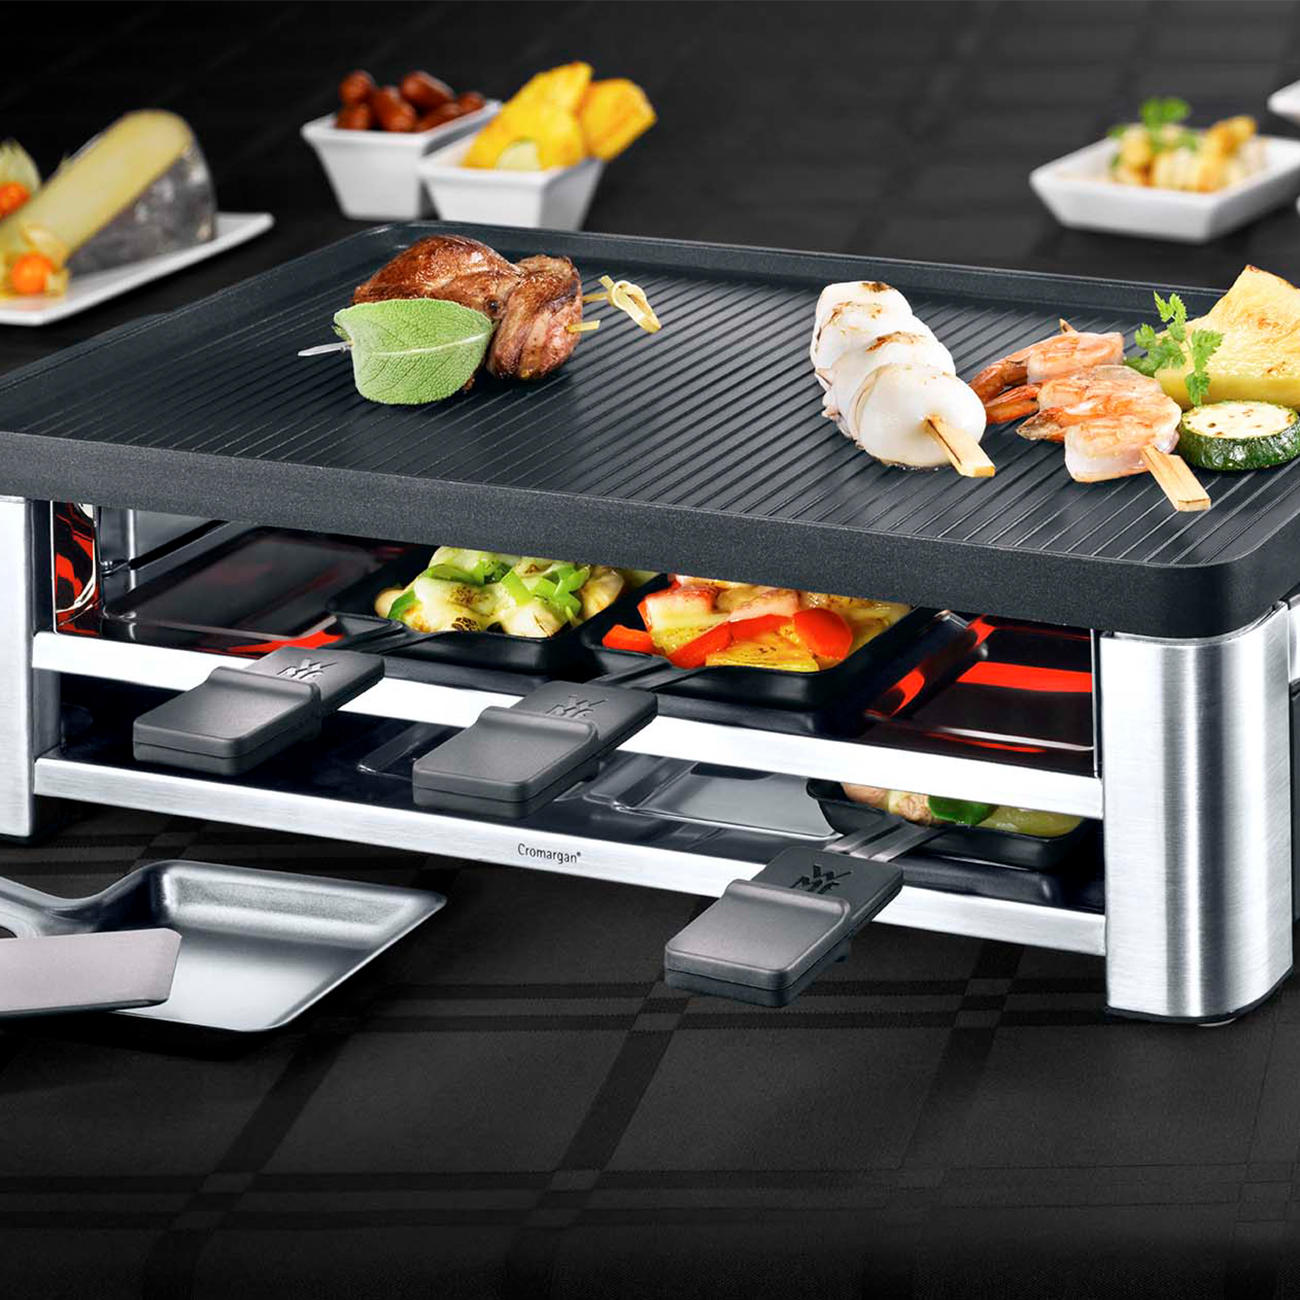 wmf kombi raclette lono 3 jahre garantie pro idee. Black Bedroom Furniture Sets. Home Design Ideas